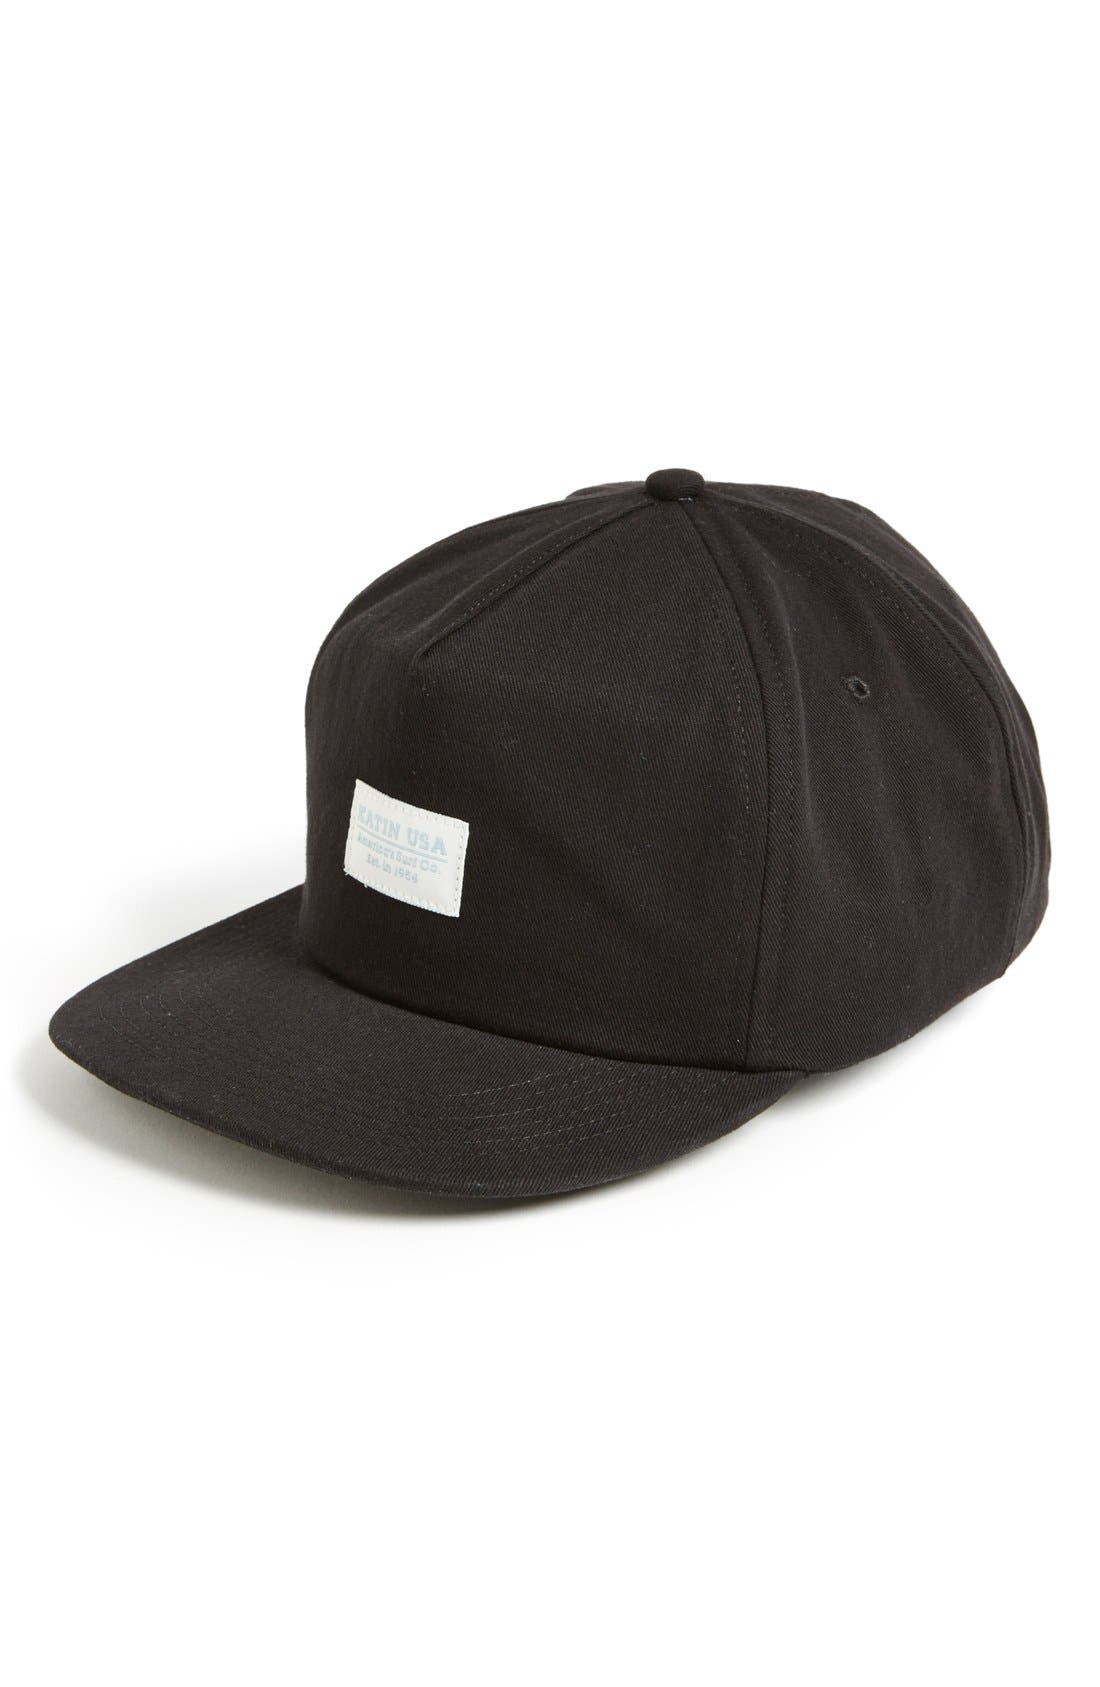 Alternate Image 1 Selected - Katin 'Standard' Snapback Baseball Cap